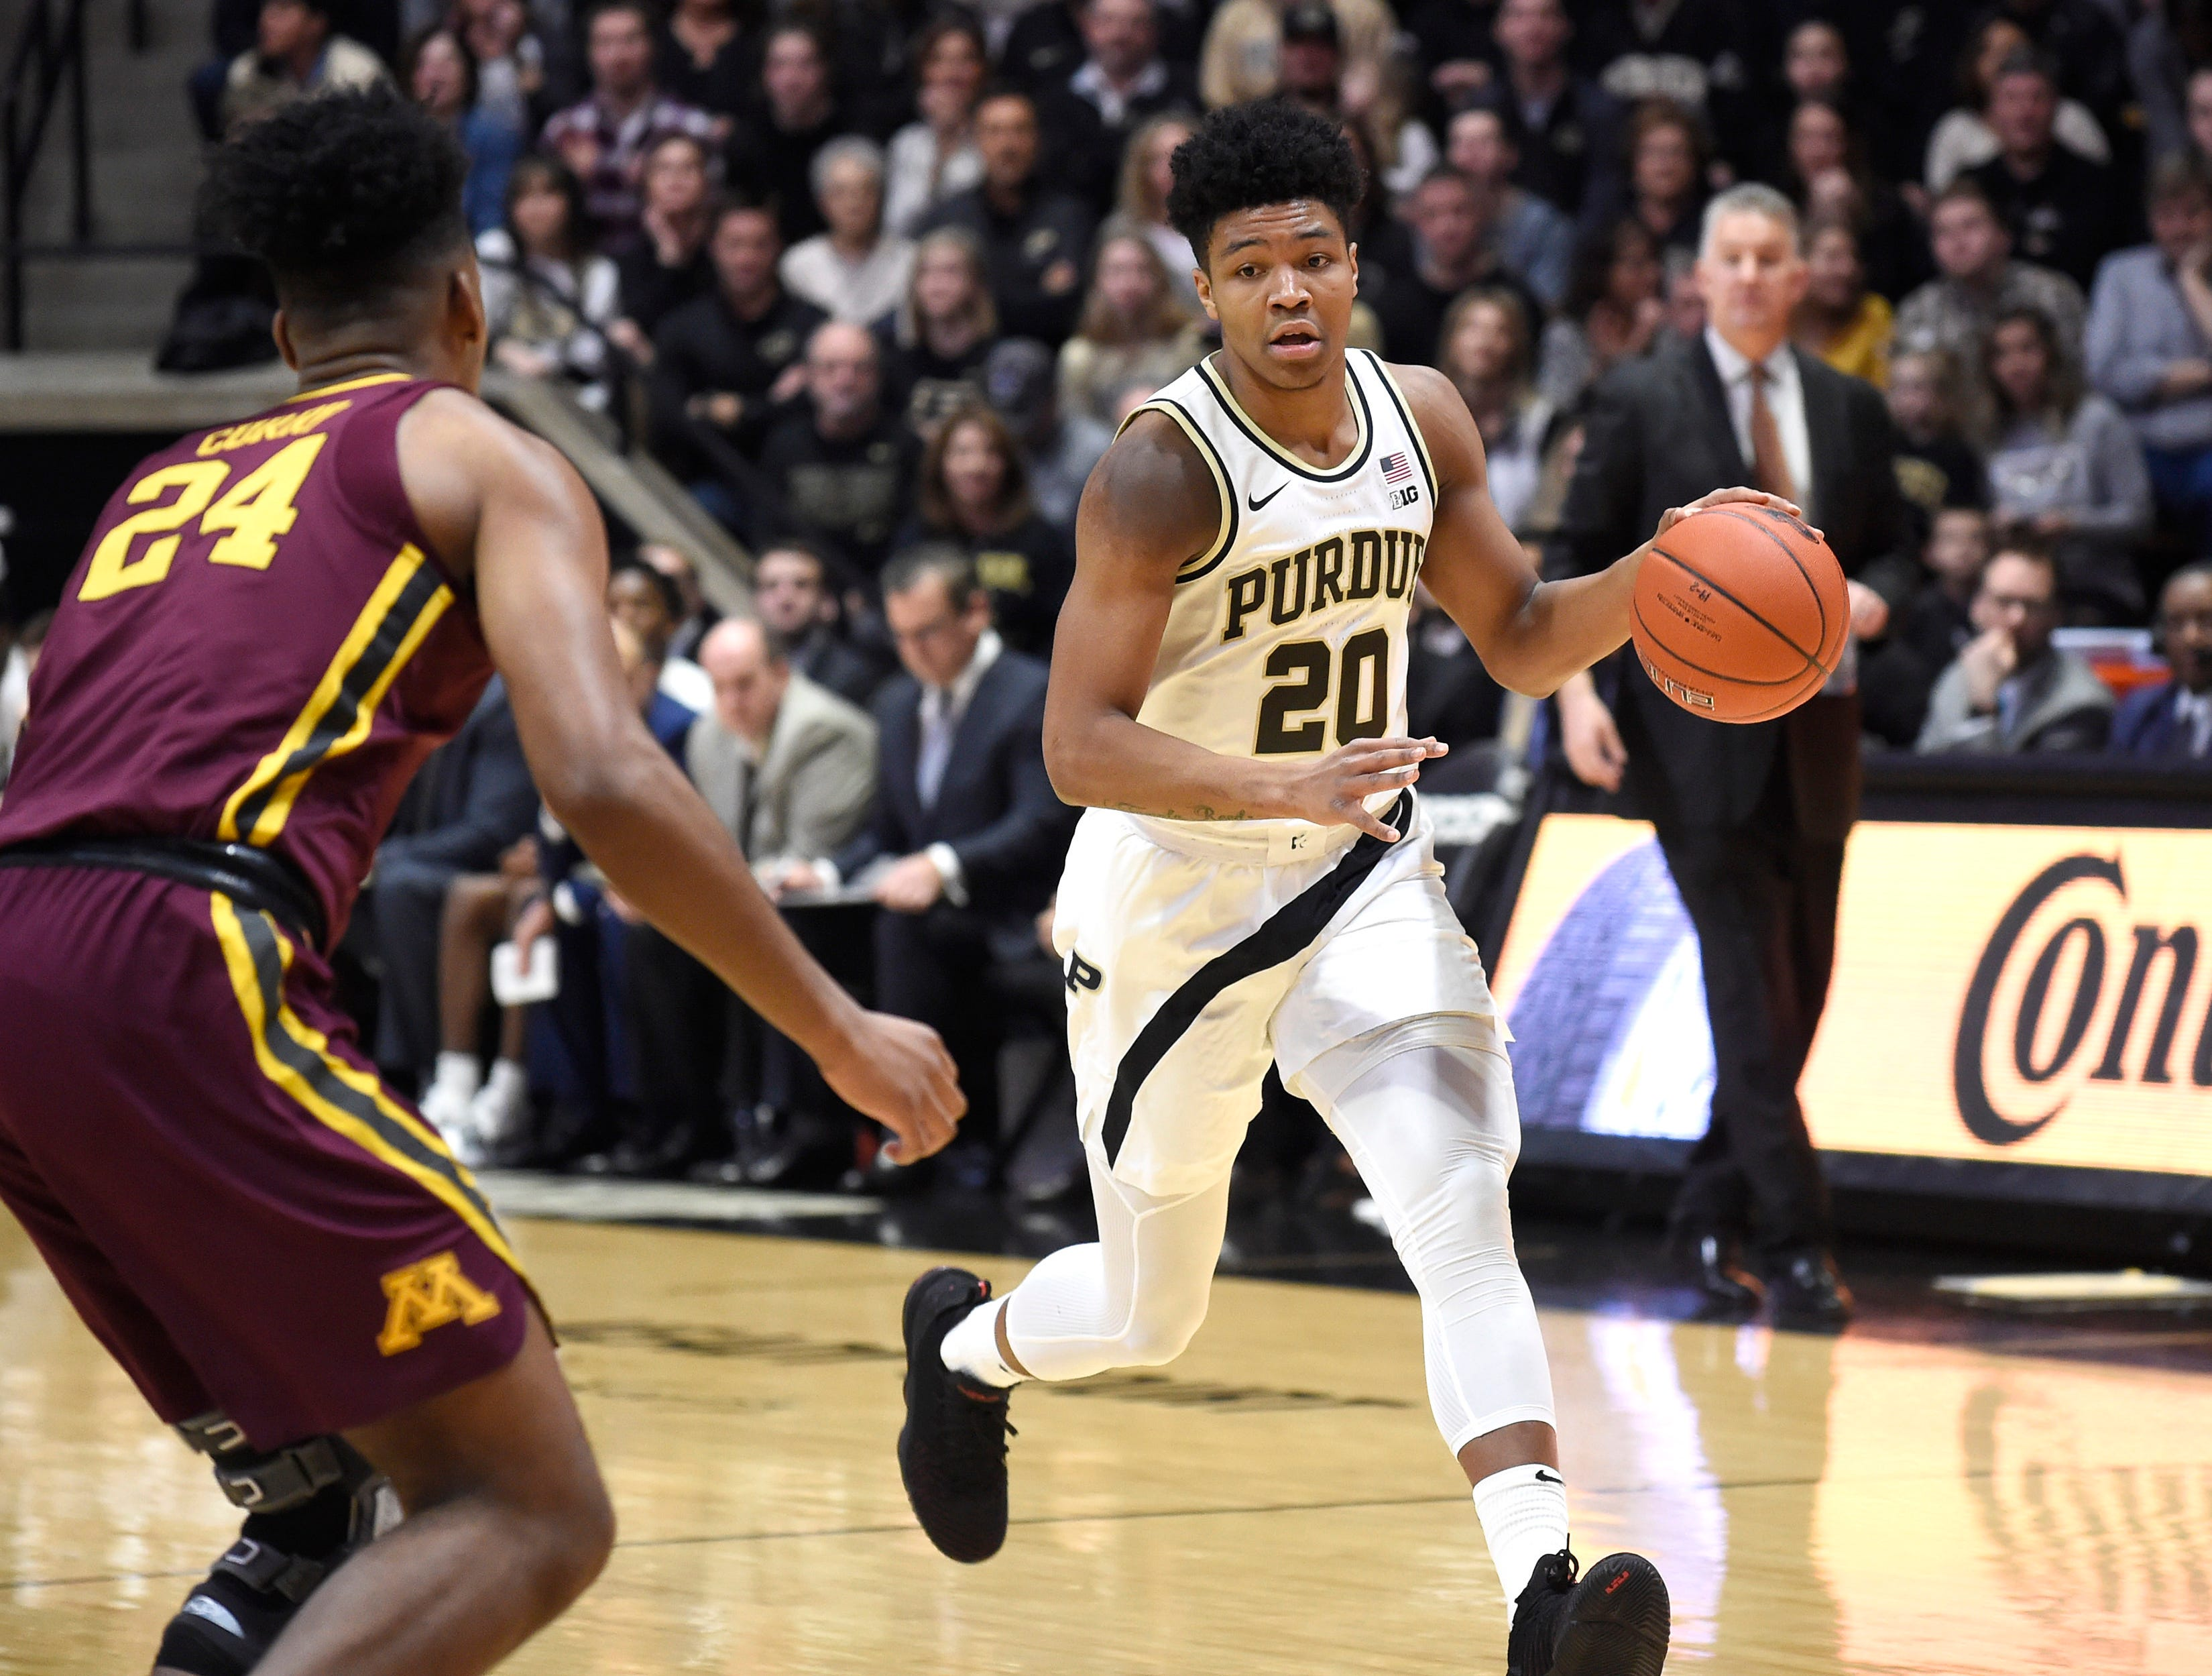 Feb 3, 2019; West Lafayette, IN, USA; Purdue Boilermakers guard Nojel Eastern (20) dribbles the ball as Minnesota Golden Gophers forward Eric Curry (24) defends in the first half at Mackey Arena. Mandatory Credit: Sandra Dukes-USA TODAY Sports